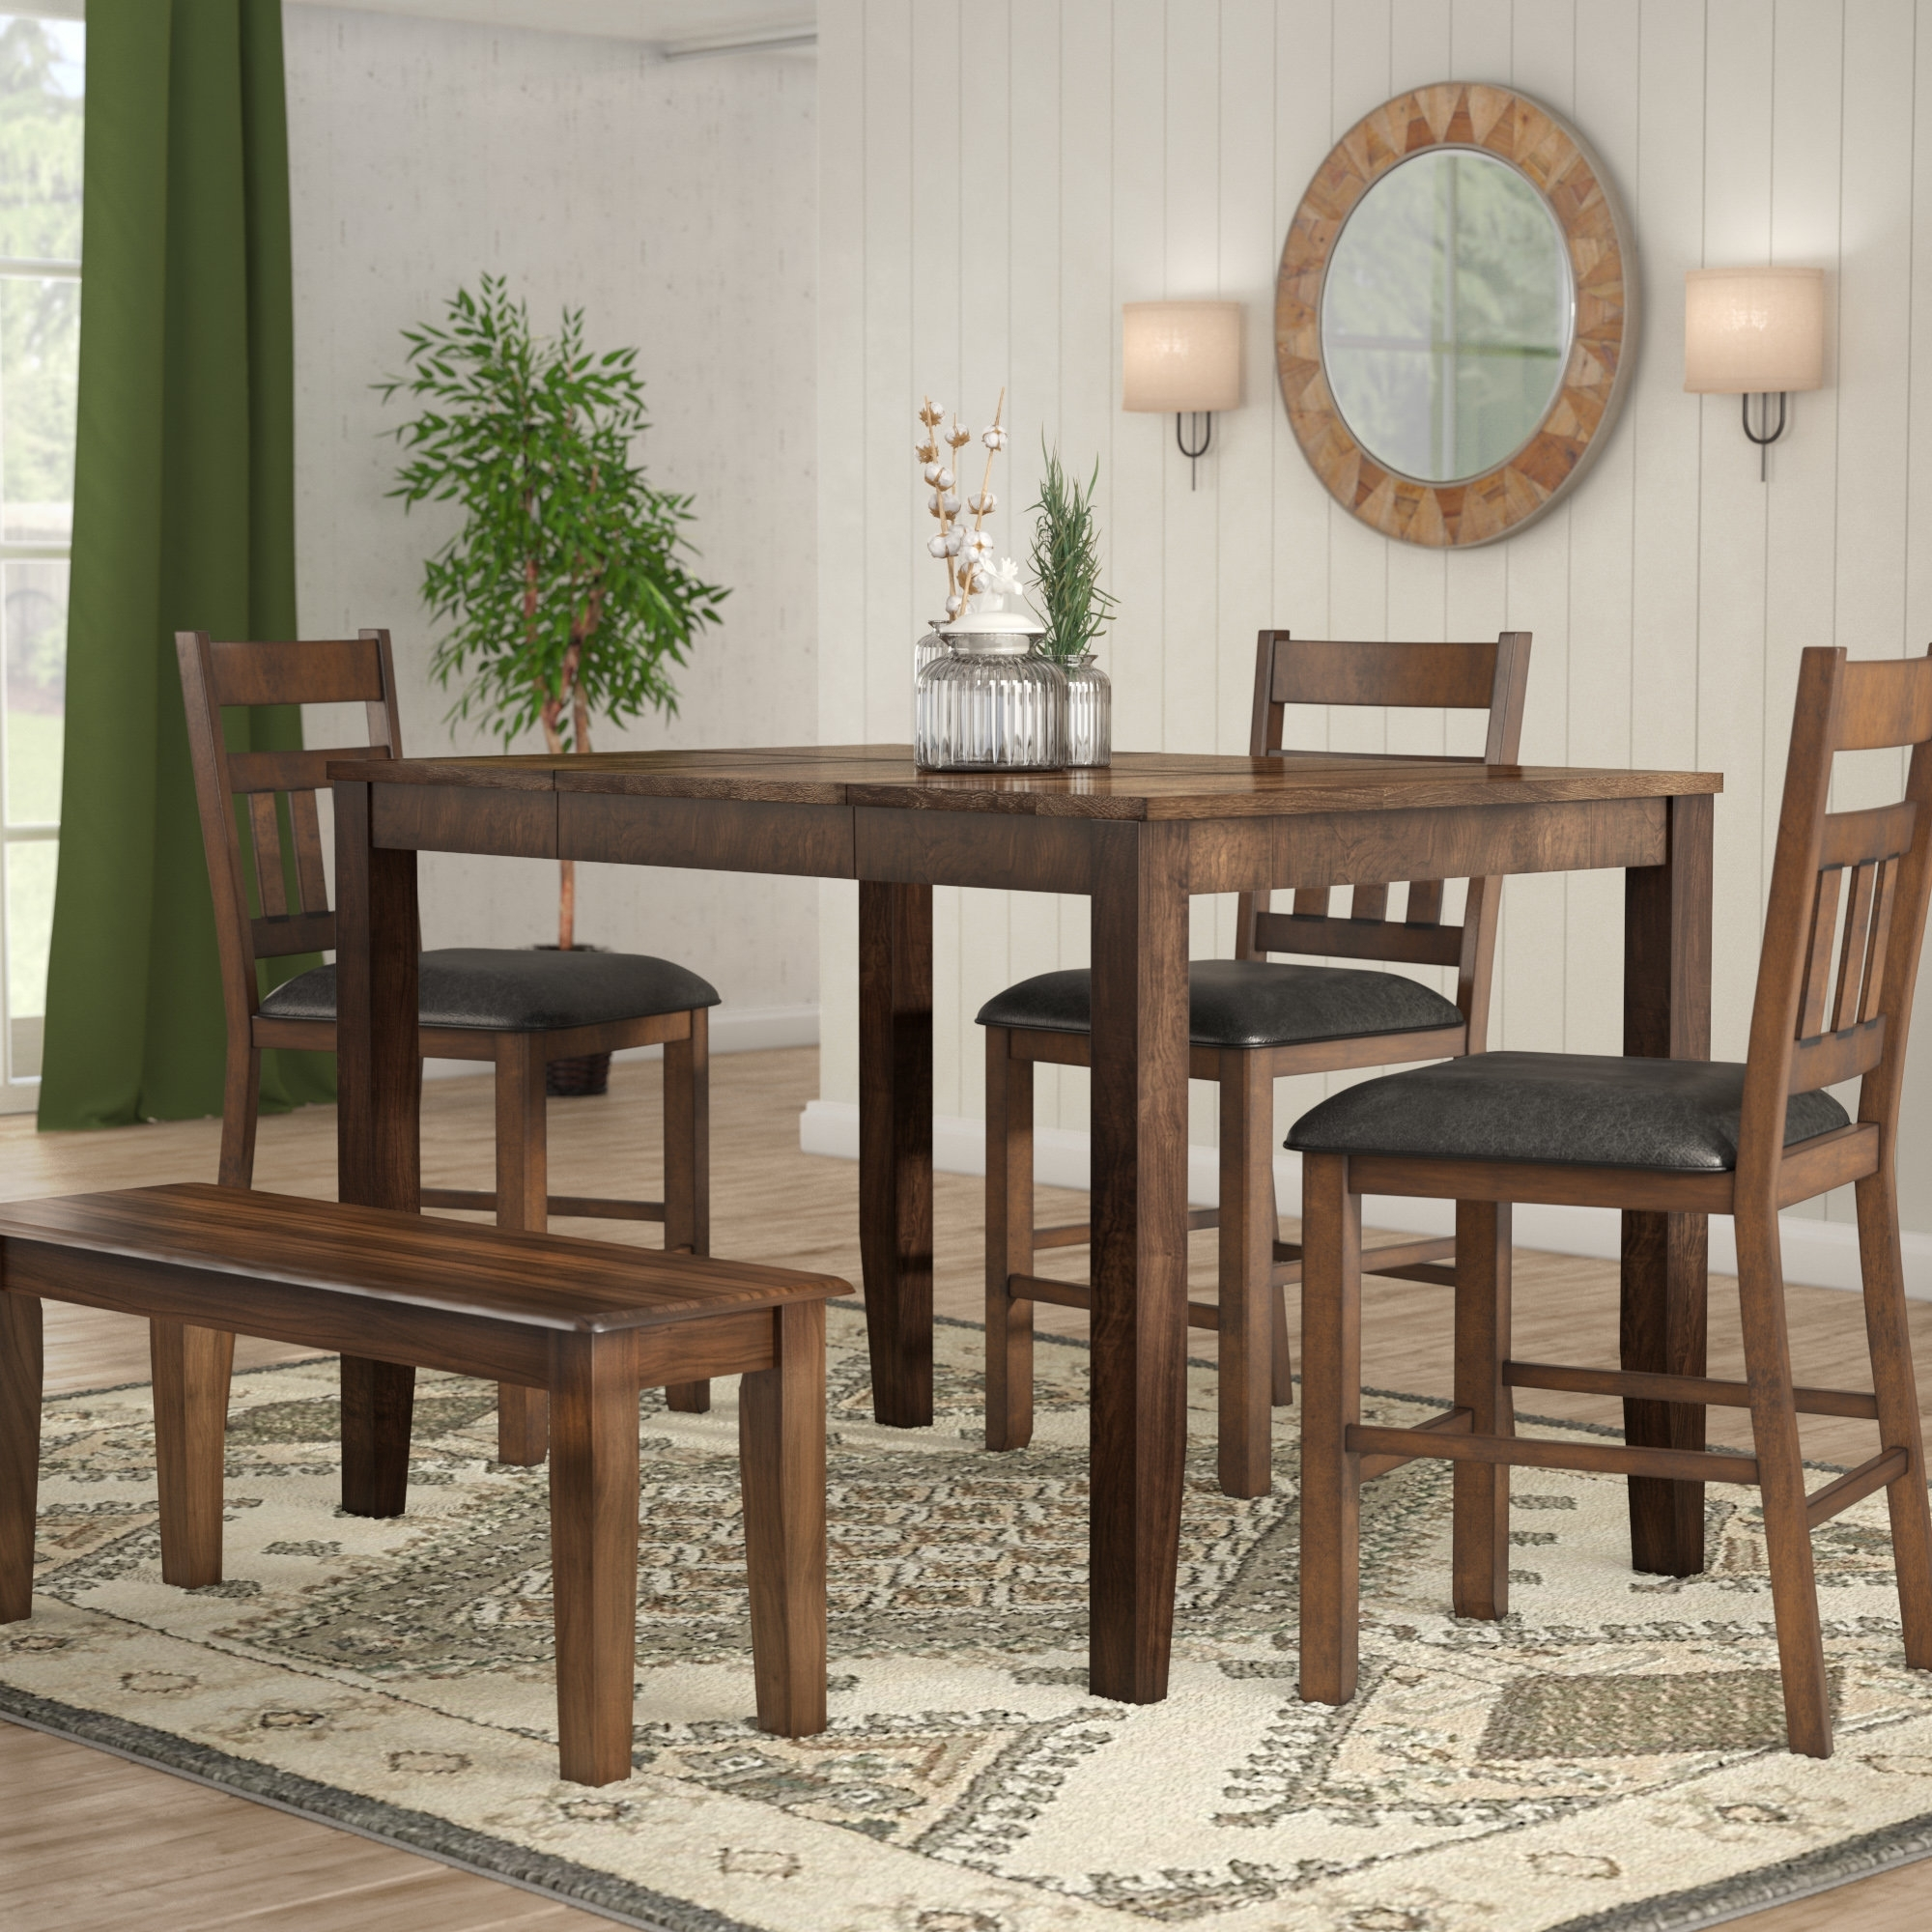 Wayfair Throughout 2018 Square Extendable Dining Tables And Chairs (View 23 of 25)